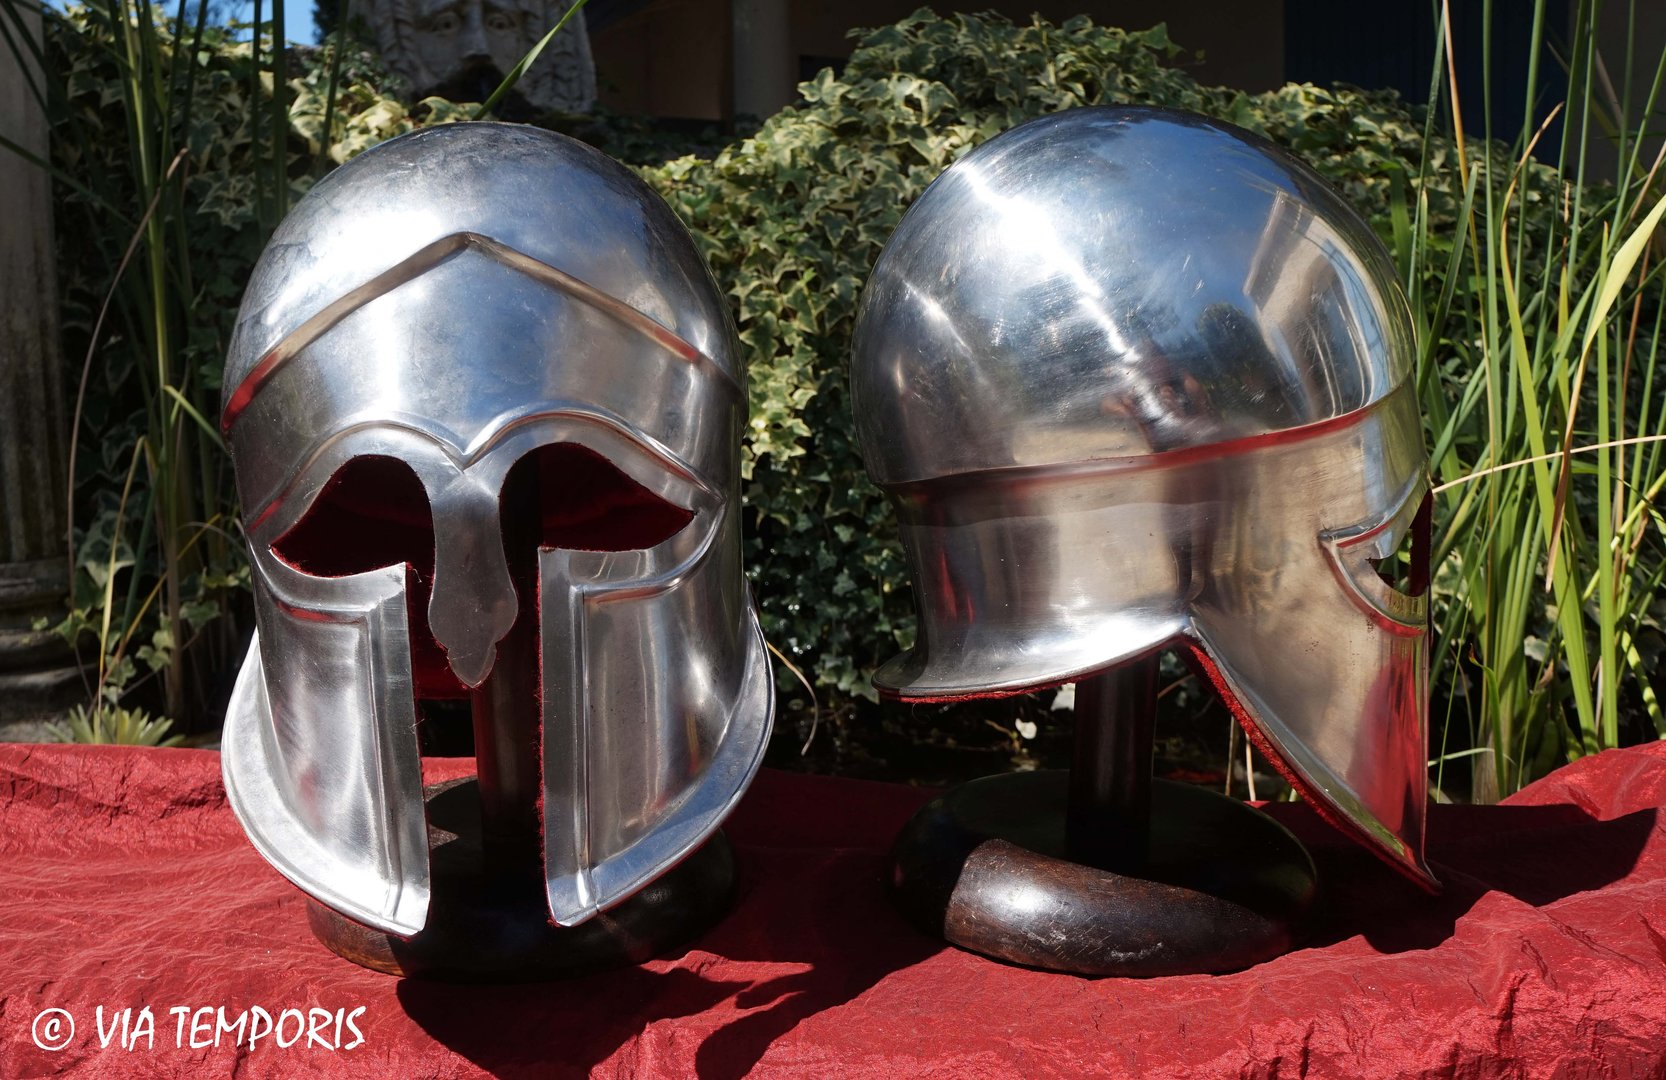 GREEK - CORINTHIAN IRON HELMET MK I